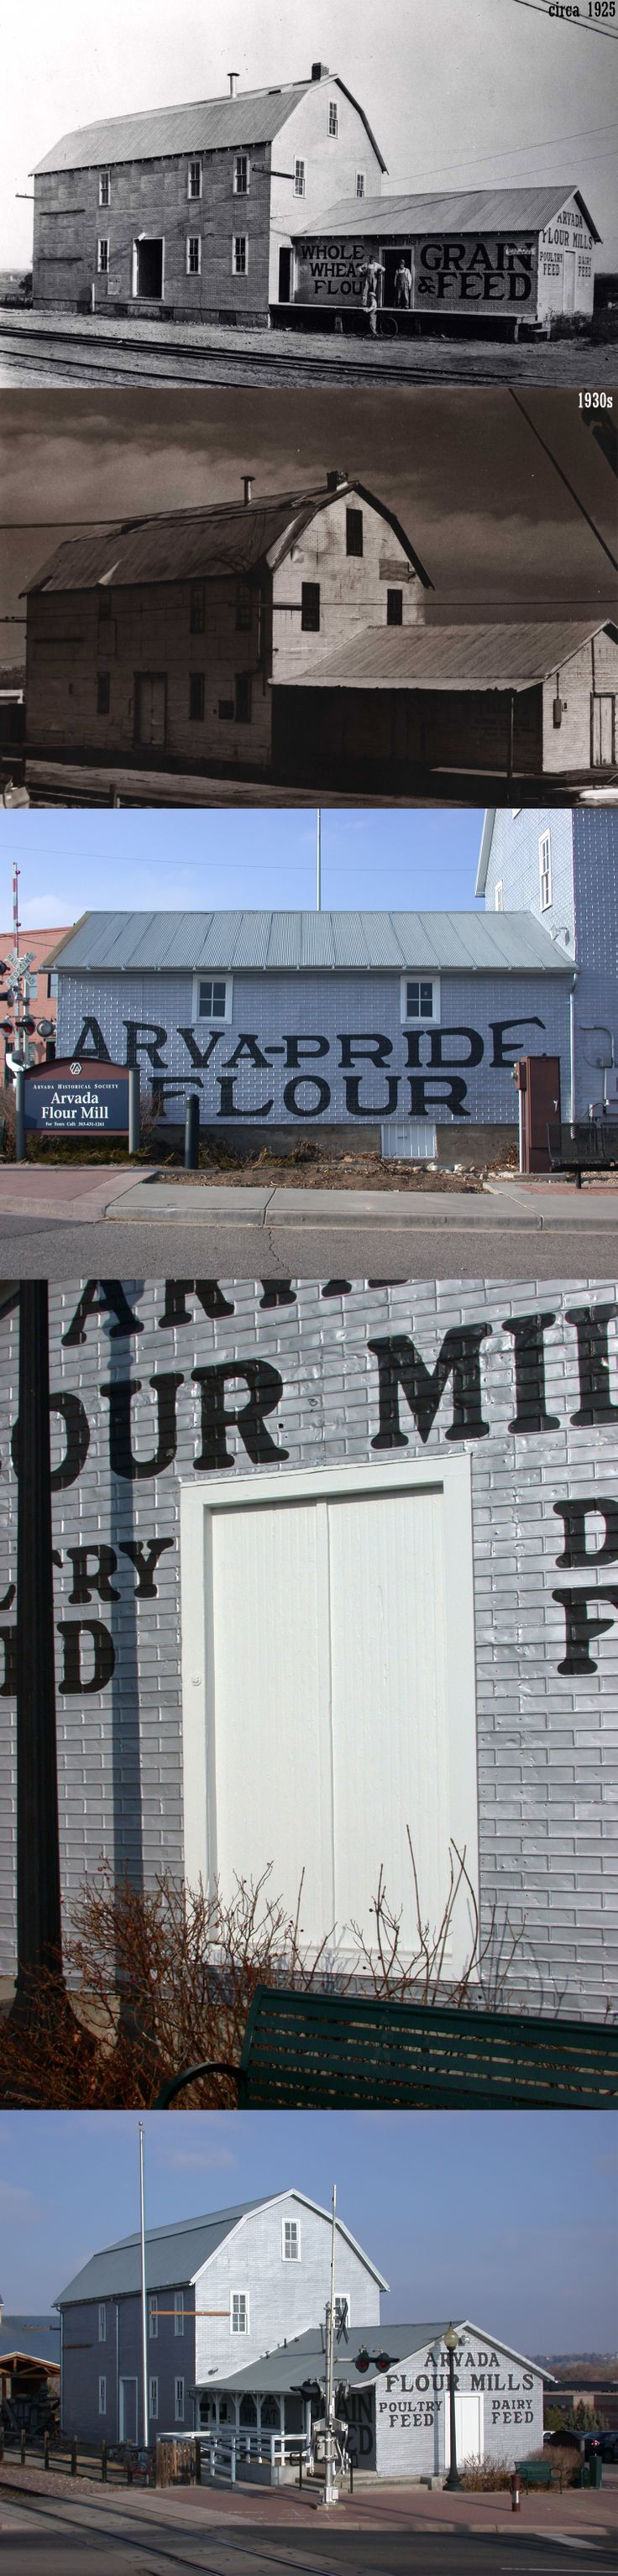 """Today white flour is anything but glorified, but in the 1920s, Gene Benjamin, founder of the Arvada Flour Mill in Jefferson County, was so known for his high-quality white flour that he held a contest to name it, plastering the winning entry """"Arva-Pride"""" on the side of his mill. In 1944, he sold the mill to Louis Schaaf and Frank Tiller, son of a Colorado gold miner, who kept the 1923 mill running until the 1950s. #preserveCO #yum"""